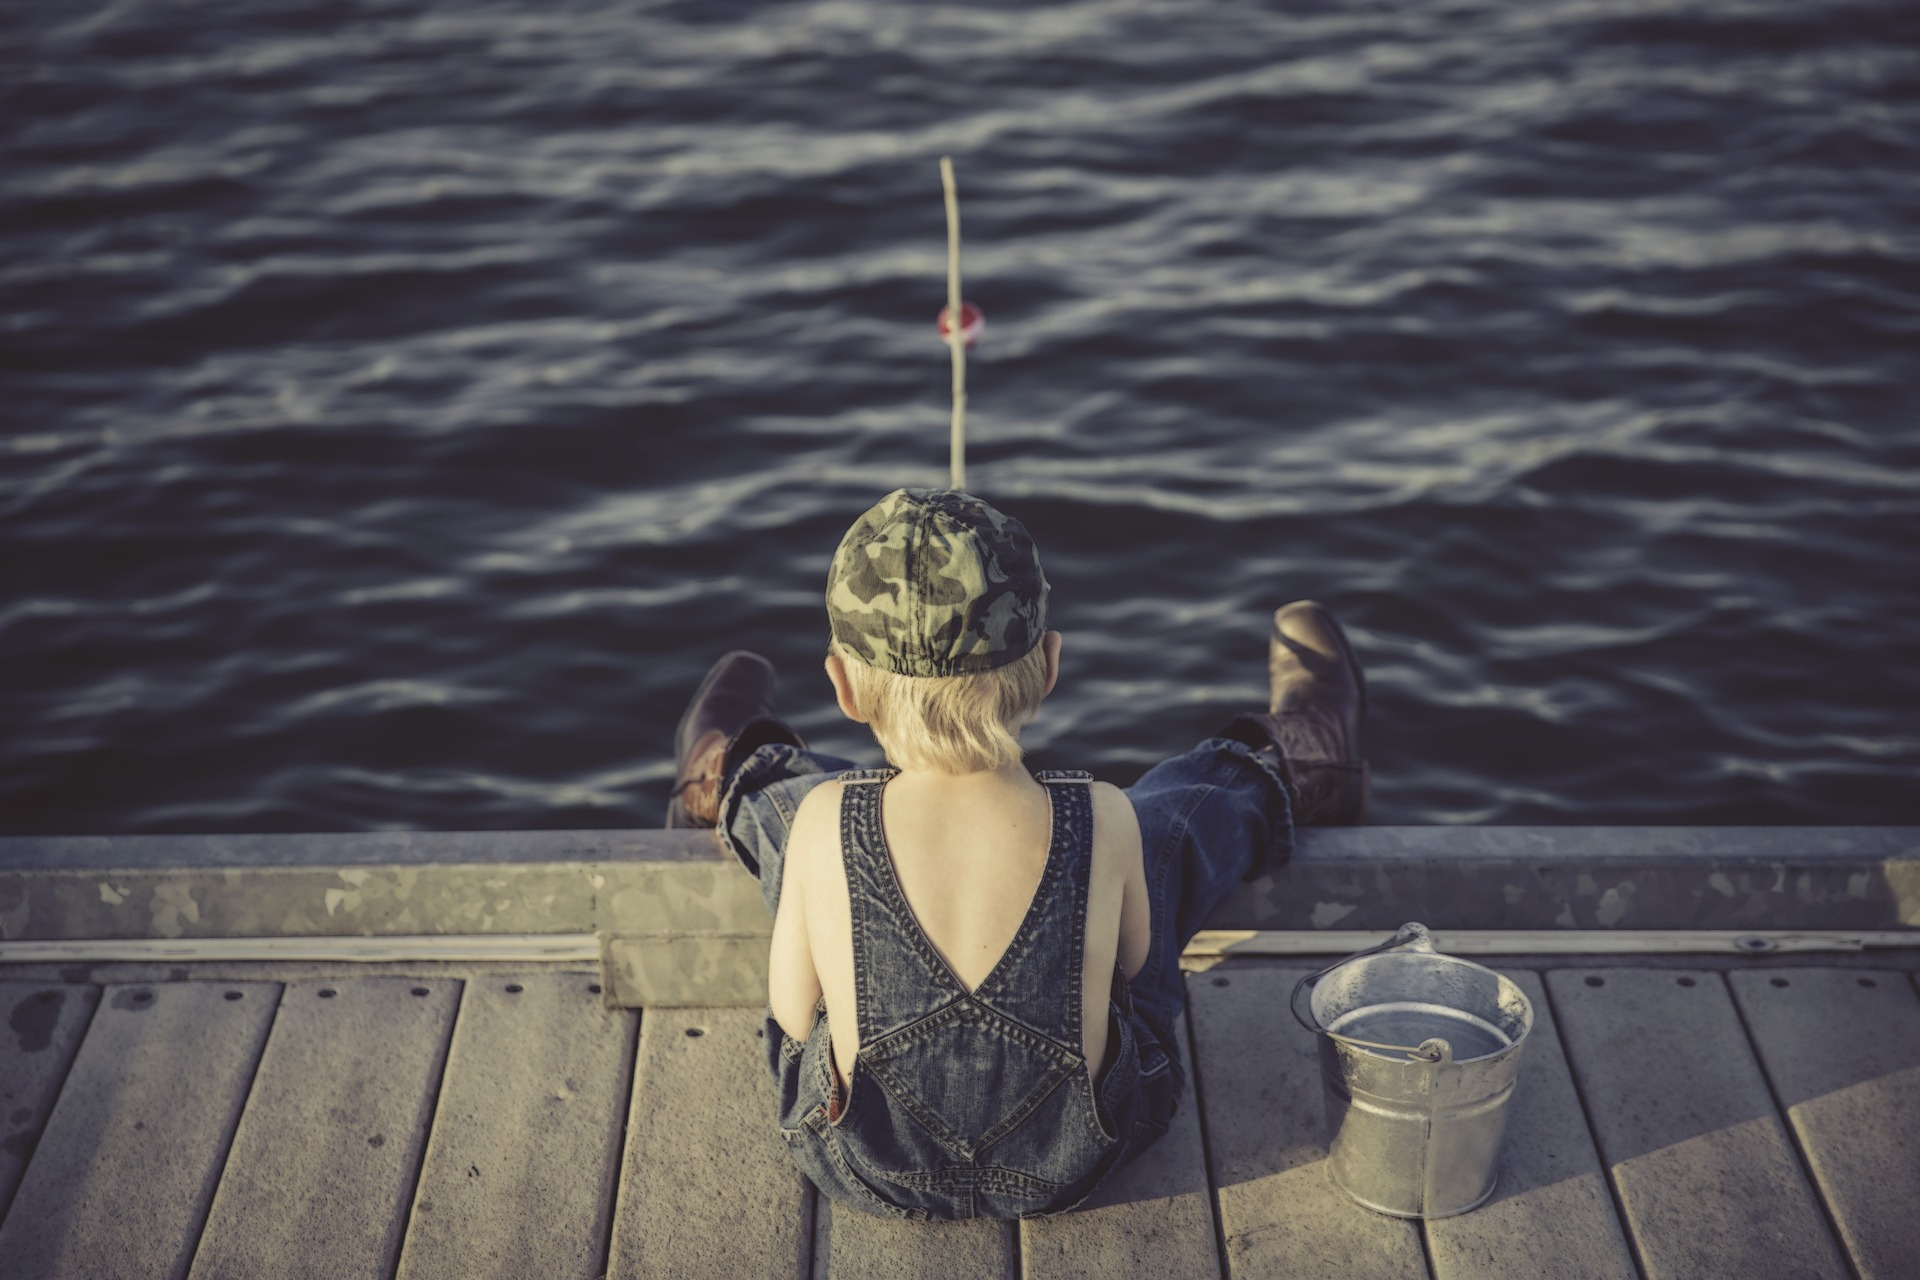 Find the best places to fish in Boise